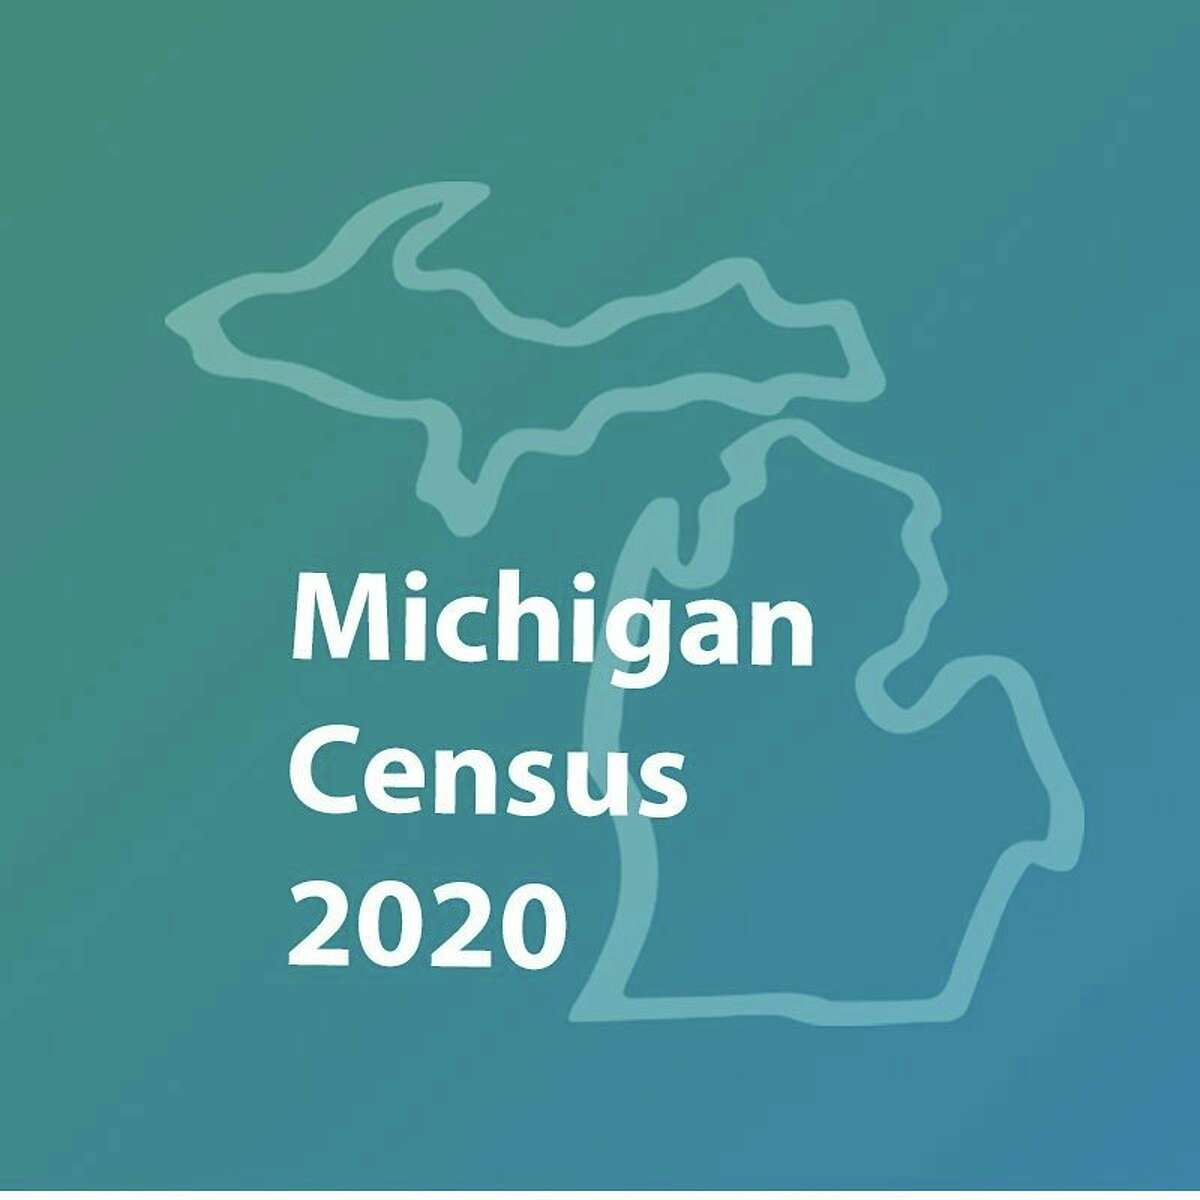 Census takers will be at the Houseman's Food Center through September to assist residents in filling out the Census questionaire. Sept. 30 is the deadline for completing the 2020 Census. (Courtesy photo/2020Census.gov)